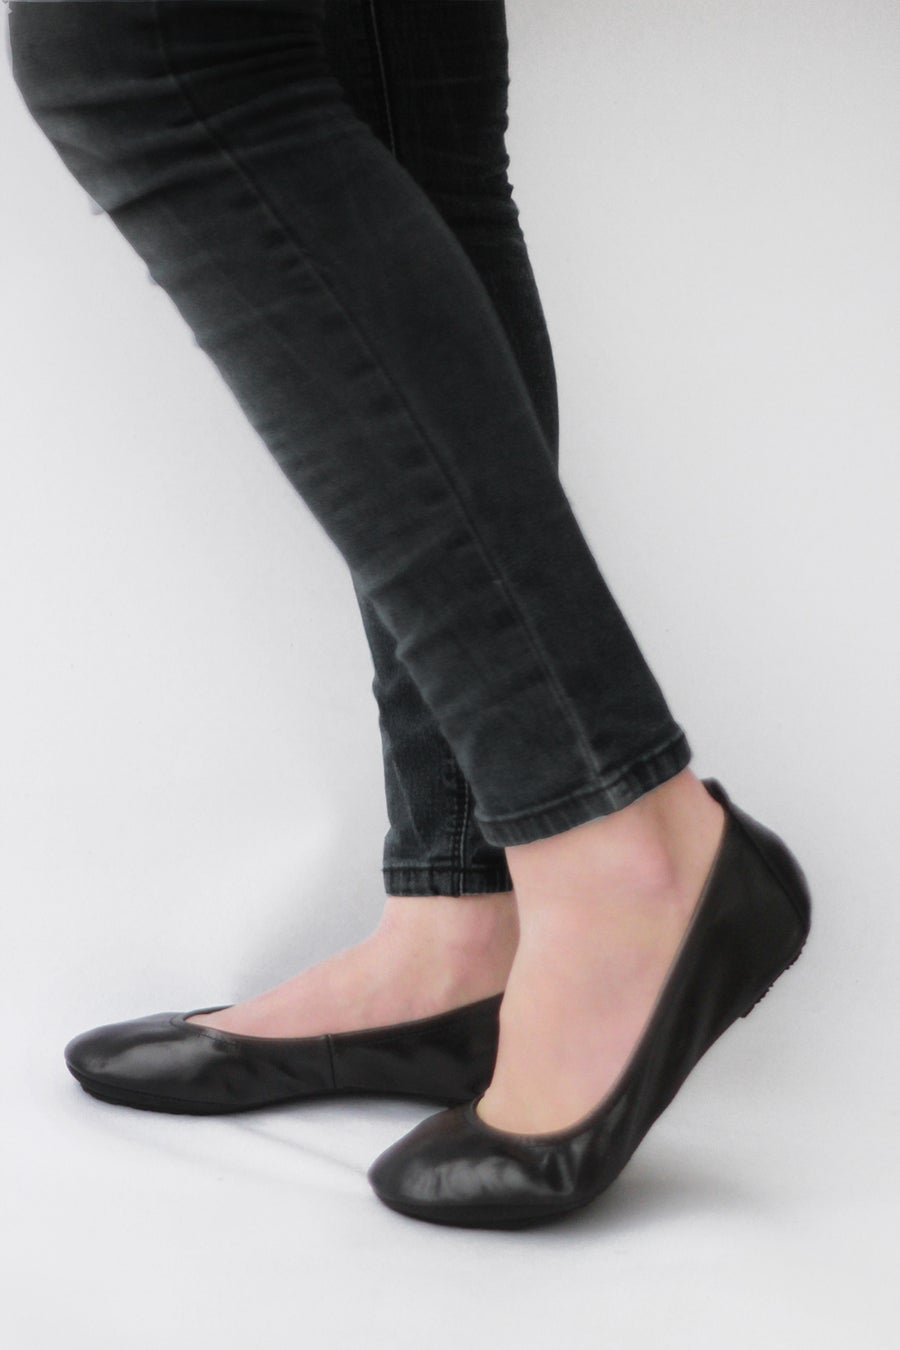 Image of Simply Me foldable ballet flats in Lustrous Black